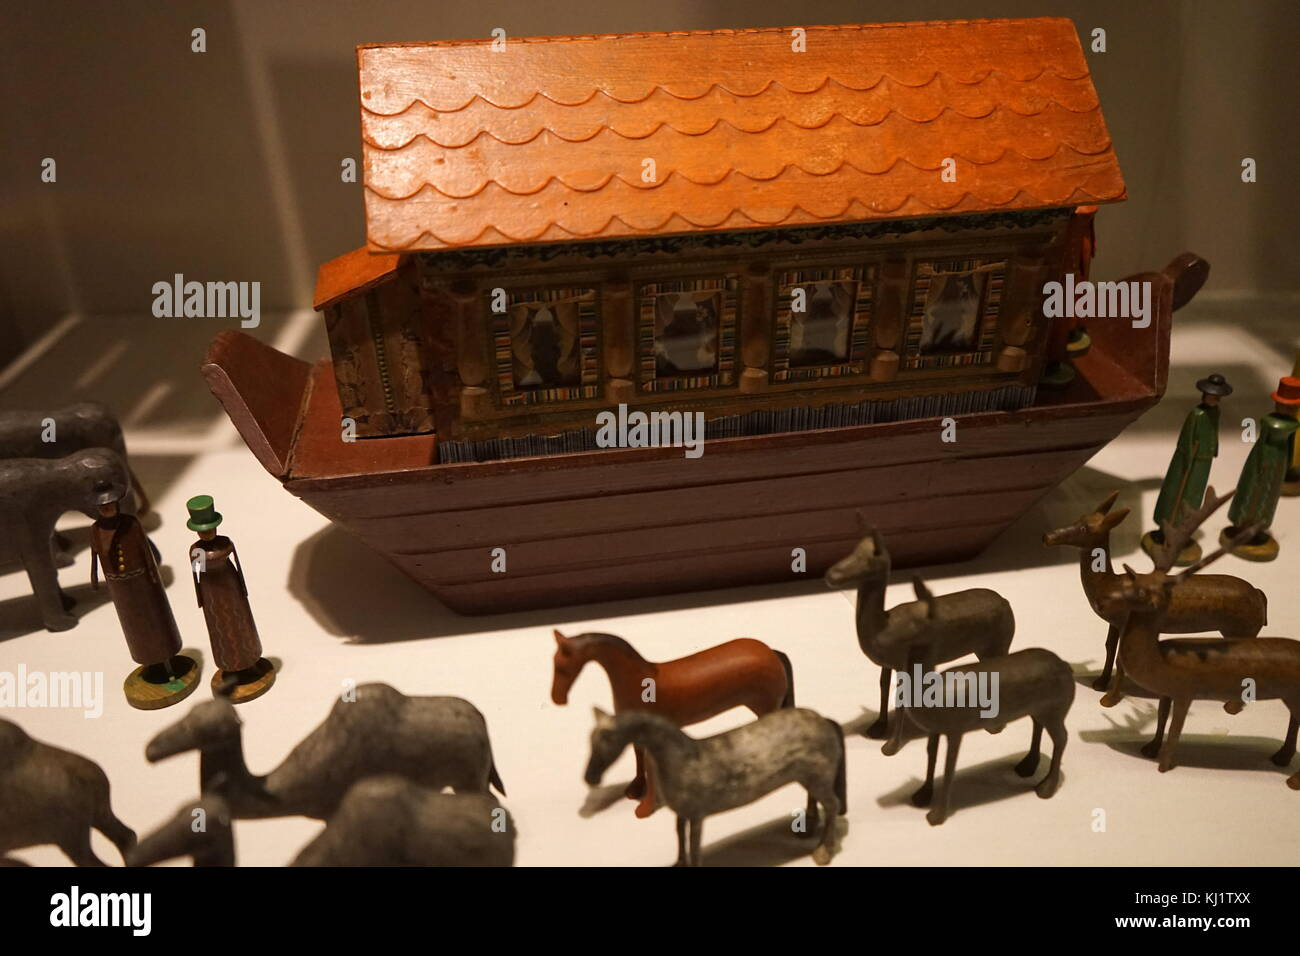 Wooden Figurines Used To Recreate The Story Of Noahs Ark The Stock